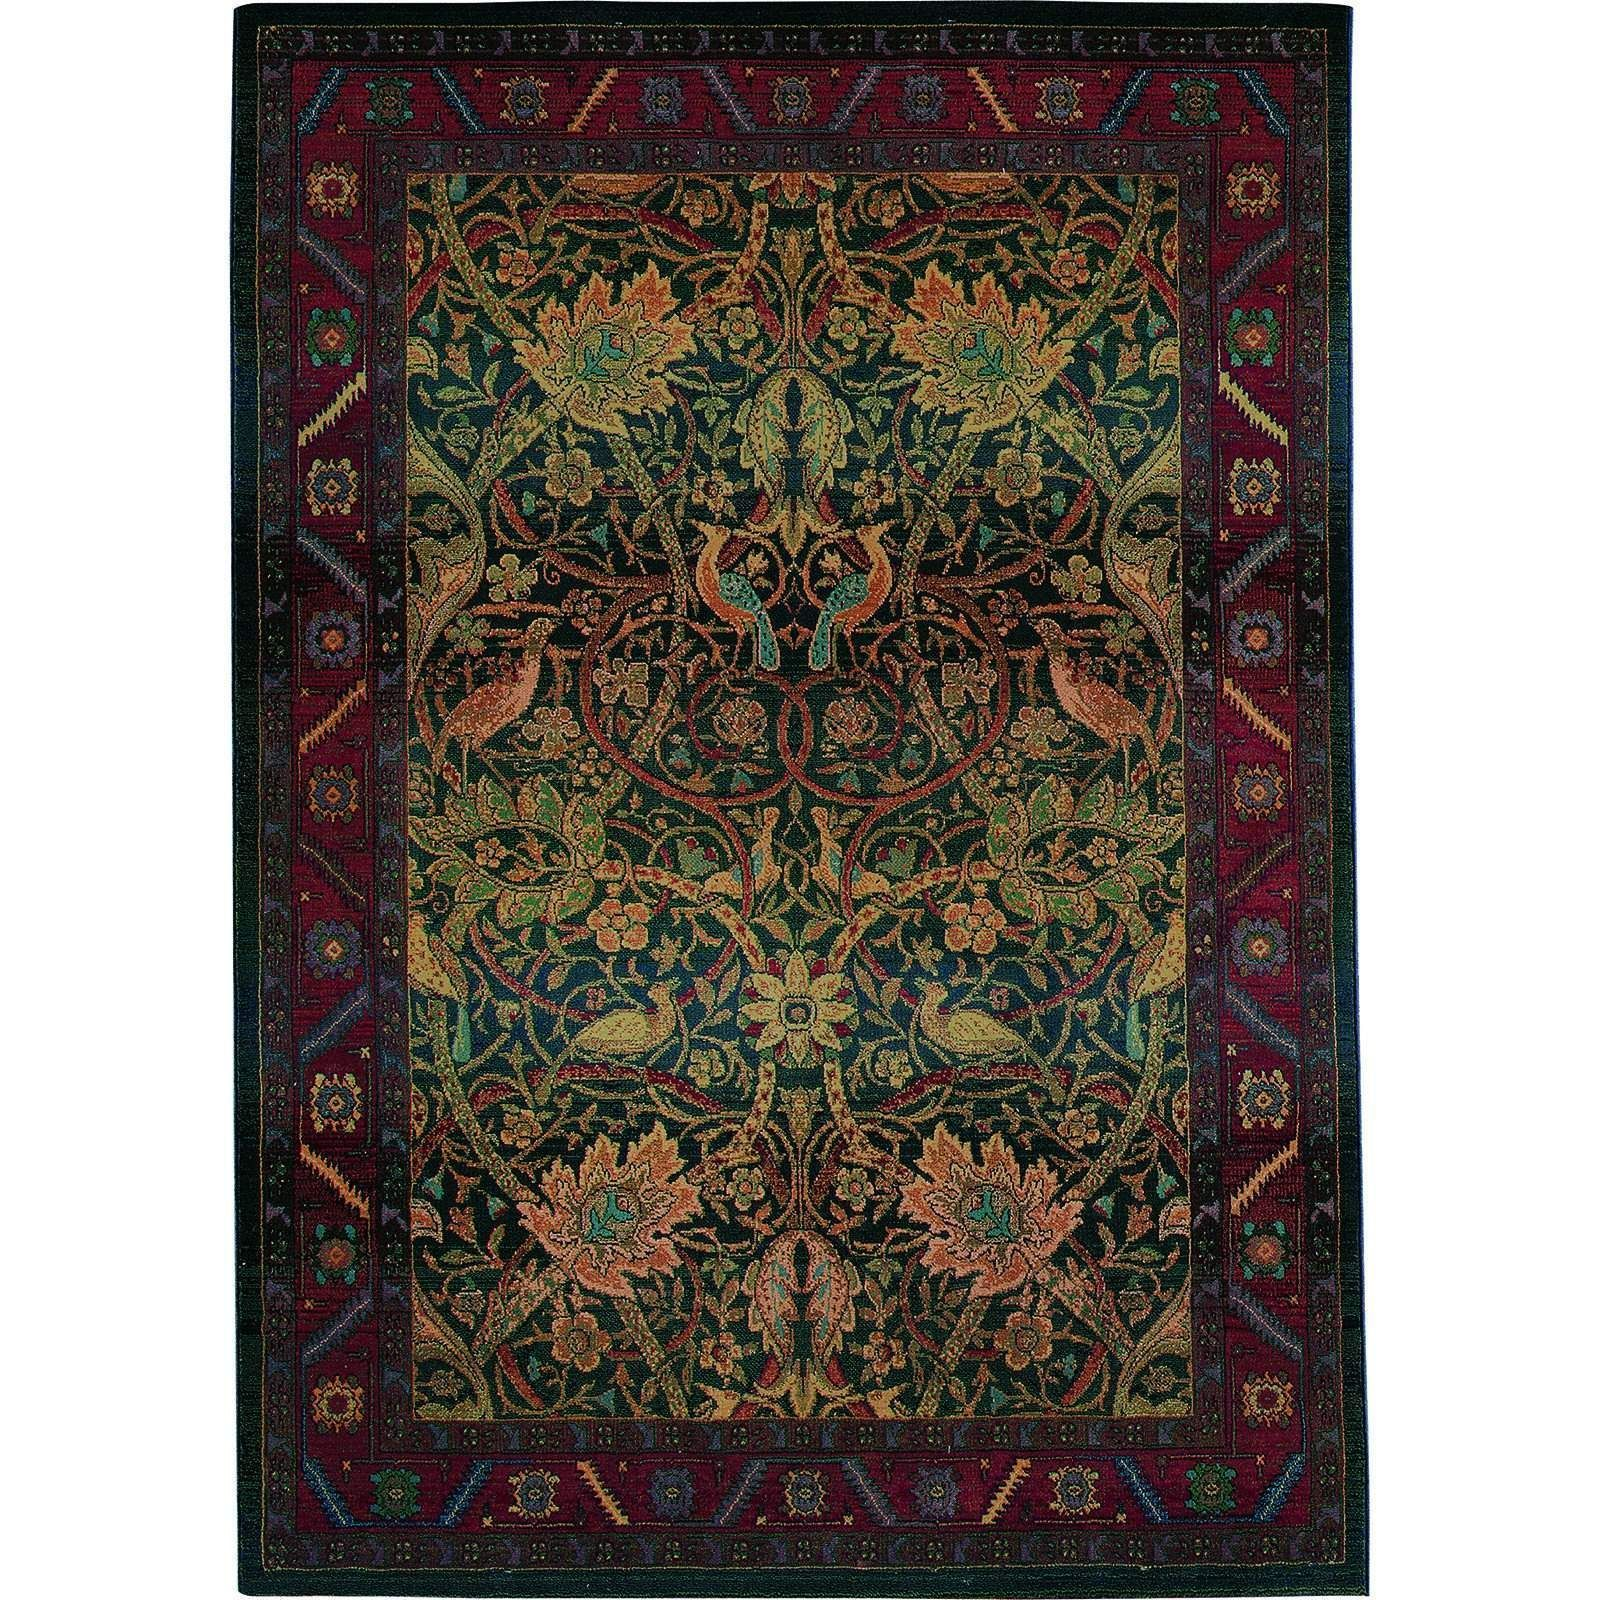 Oriental Weavers Traditional Red Blue Polypropylene Floral Machine Woven Area Rug